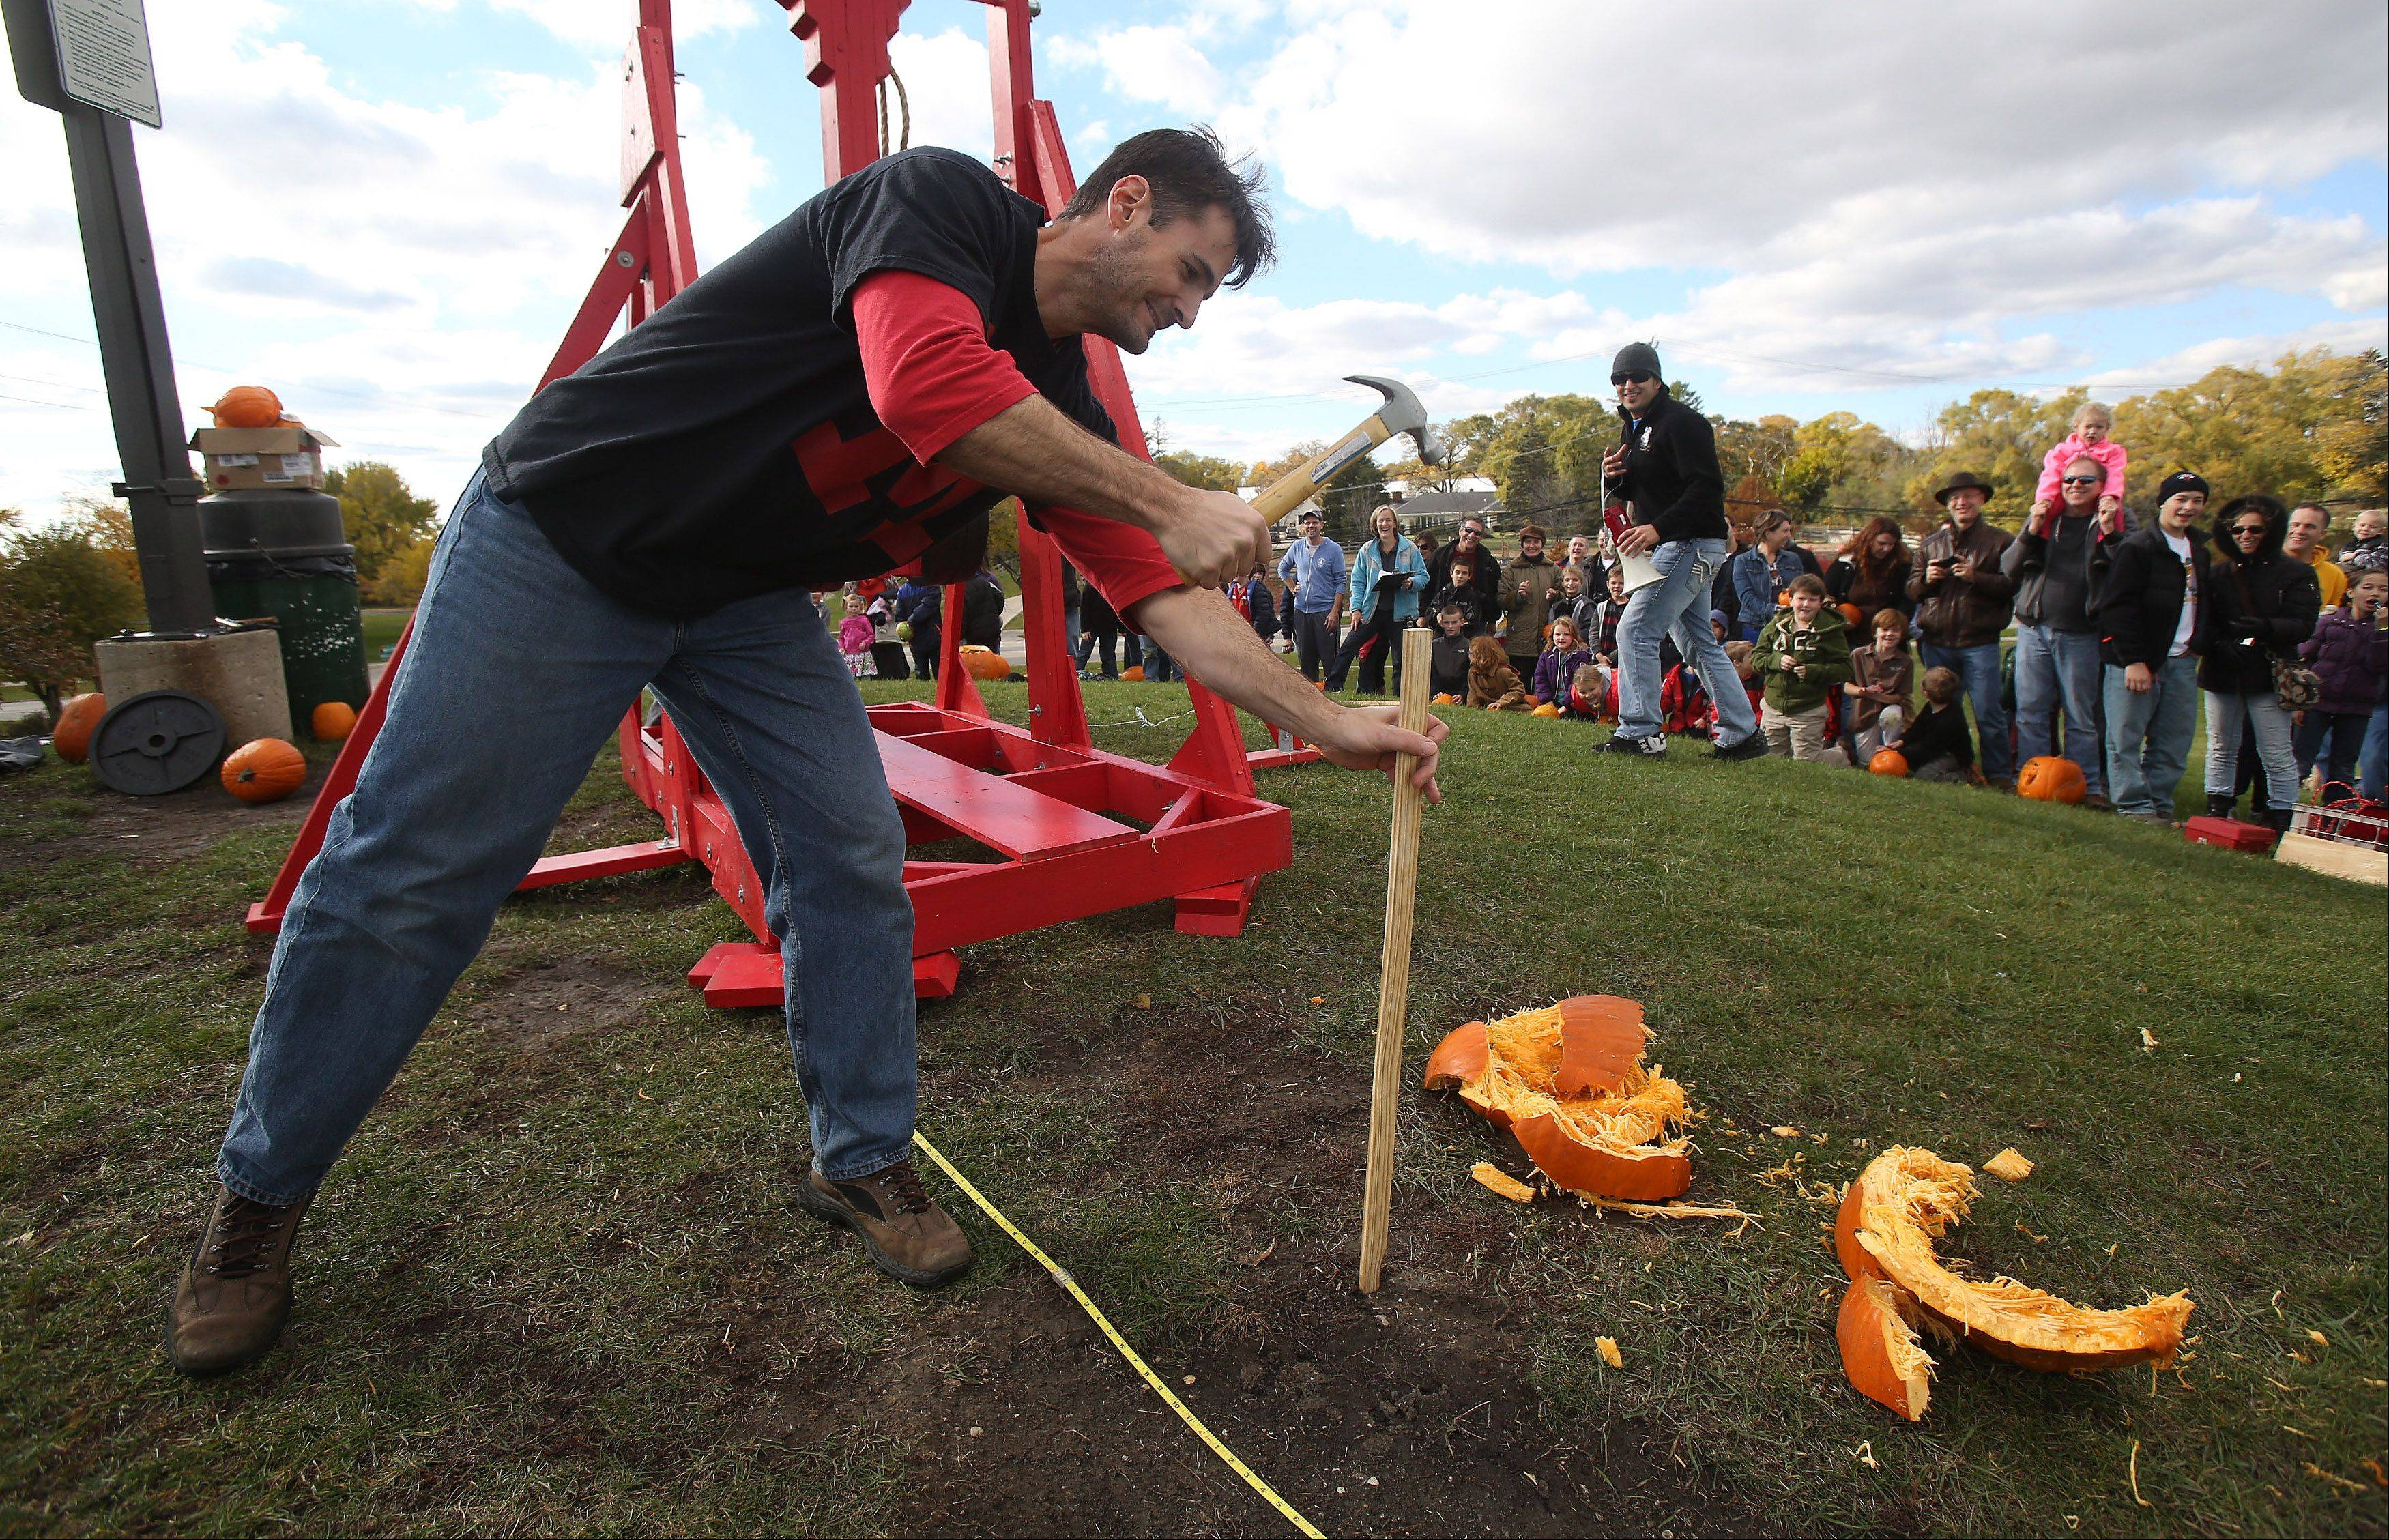 Mundelein High School physics teacher Mike Hickey marks the landing of the first pumpkin a couple of feet from the catapult after it went straight up after launch Sunday during Mundelein's 6th annual Pumpkin Drop Sunday at Keith Mione Community Park. Families brought their Halloween pumpkins to the event where they were bashed, rolled and flung with a catapult.